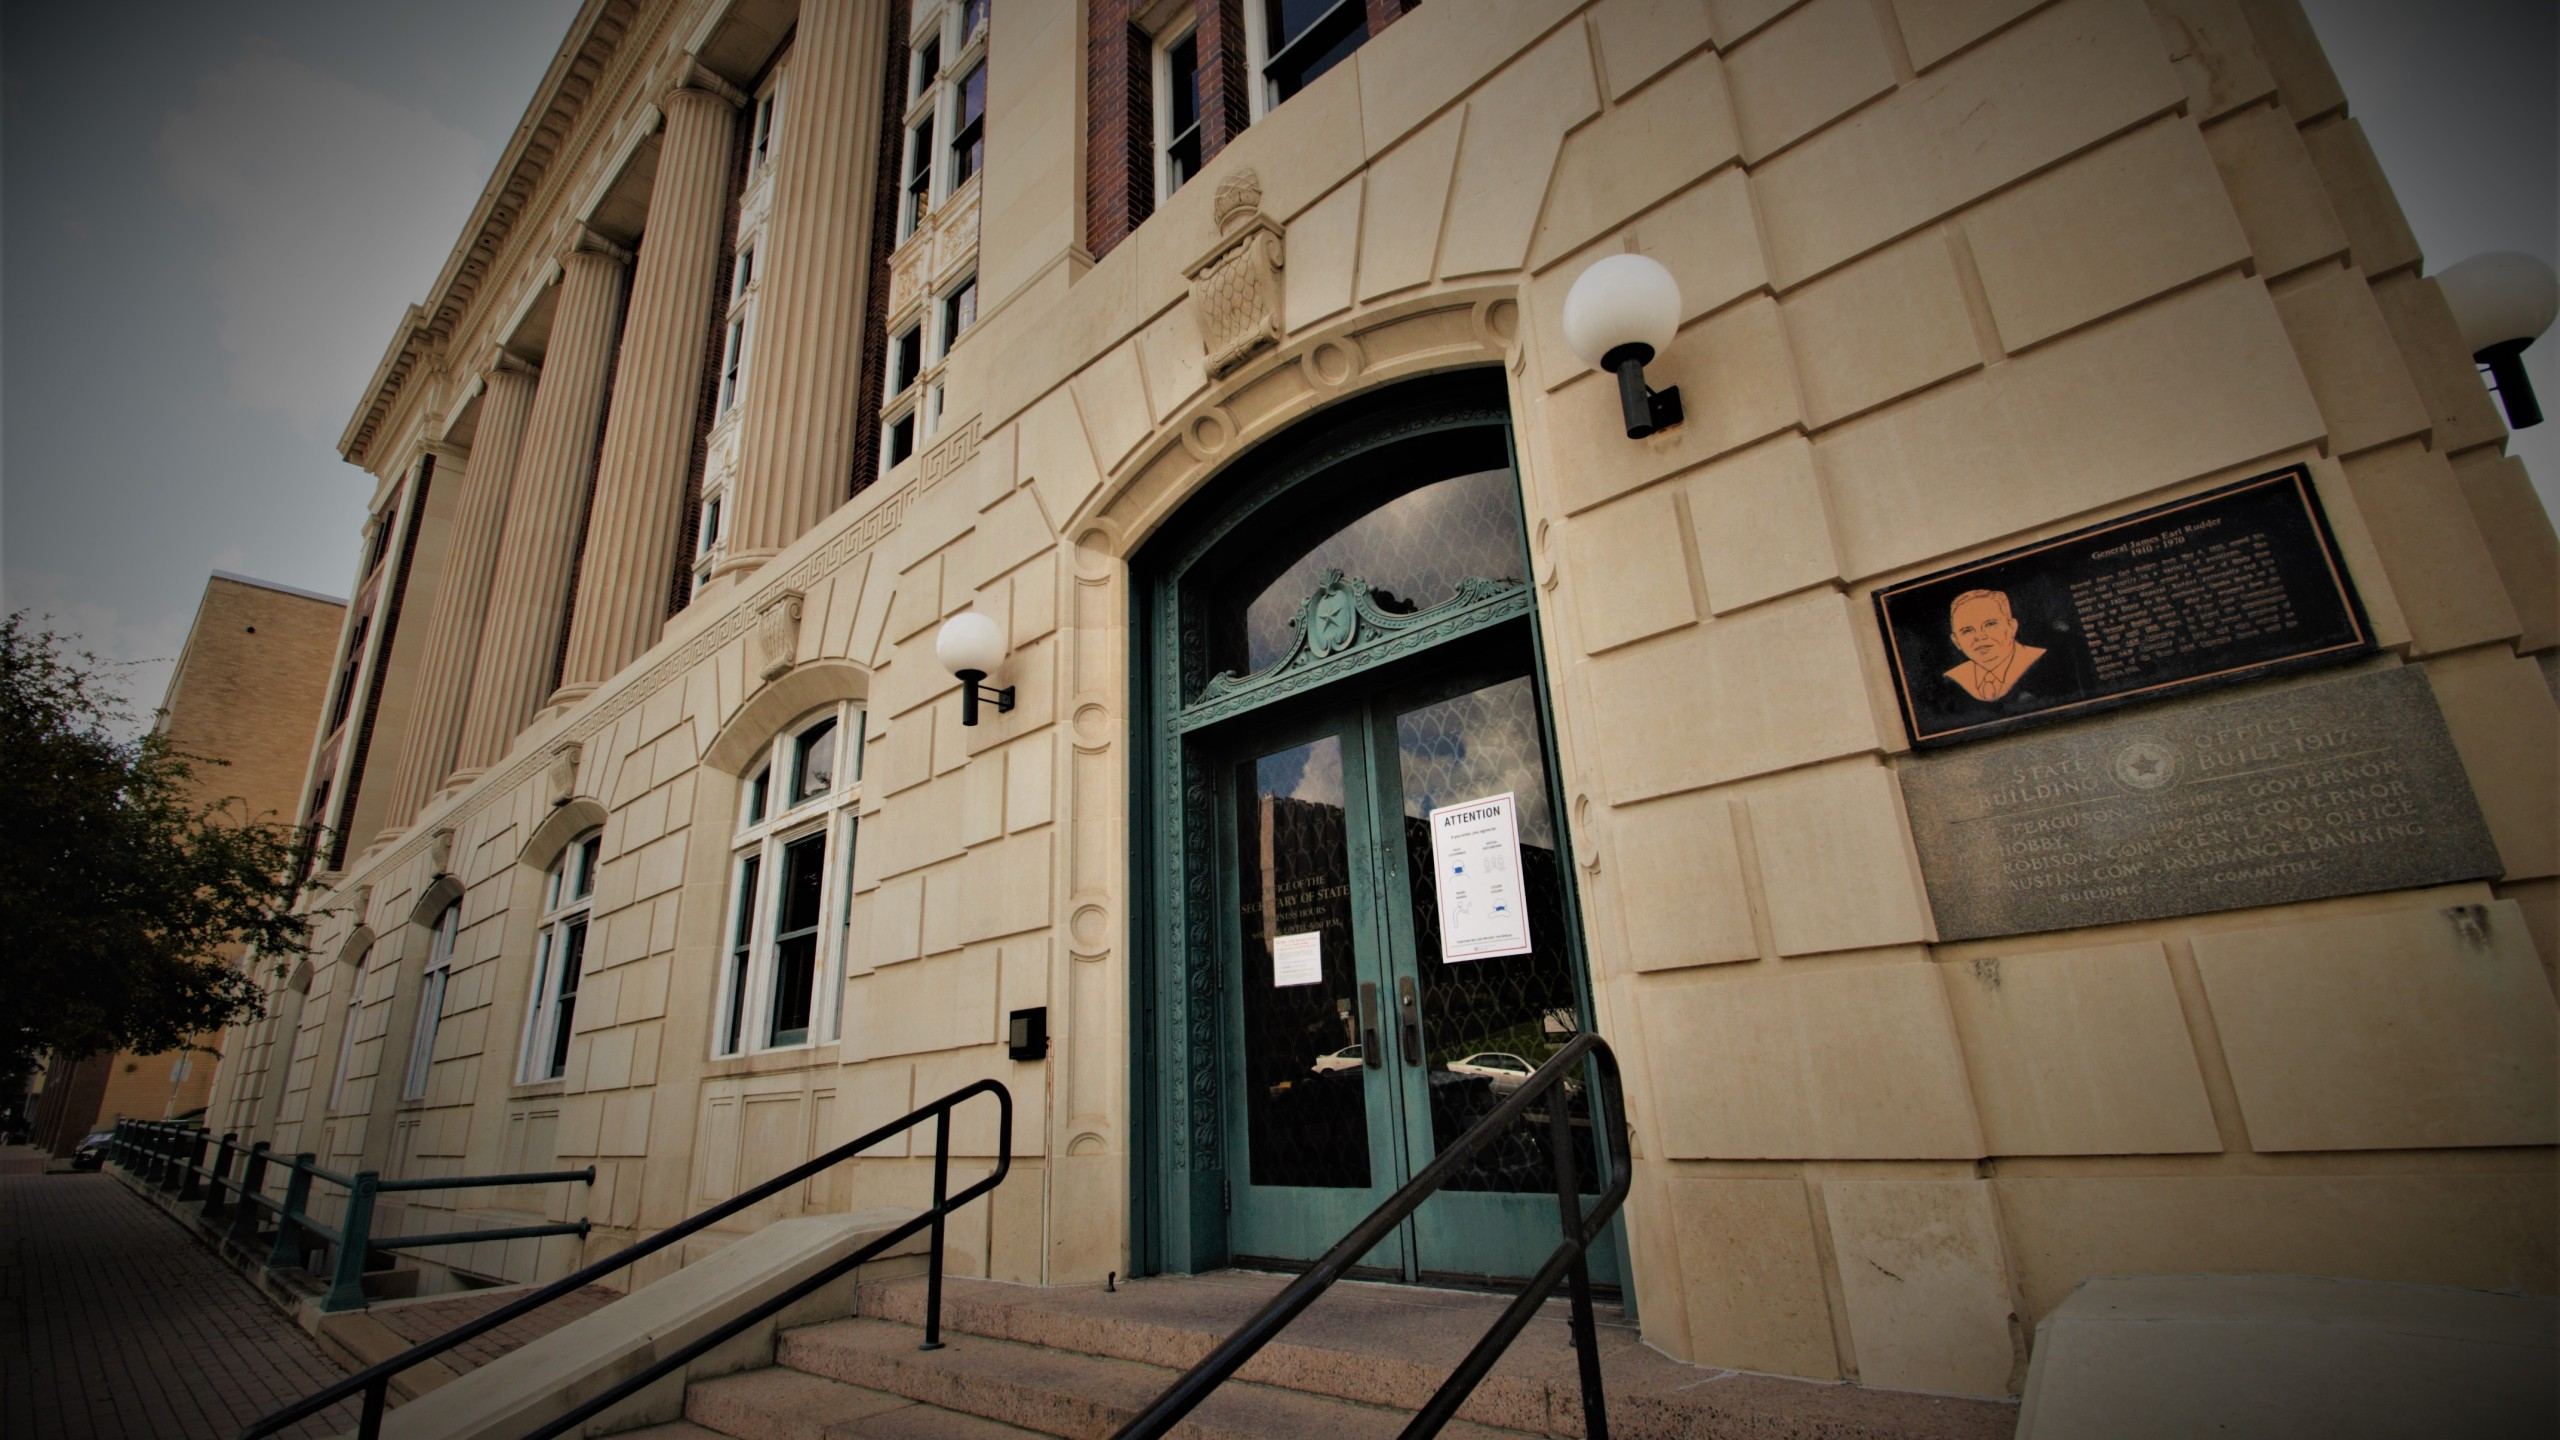 Most of the complaints filed with the Texas Attoeney General's Office since 2004 came from investigations referred from the Texas Secretary of State's Office. One person in this office determines whether a complaint filed meets the standard to move forward for a formal investigation. (KXAN Photo/Ben Friberg)